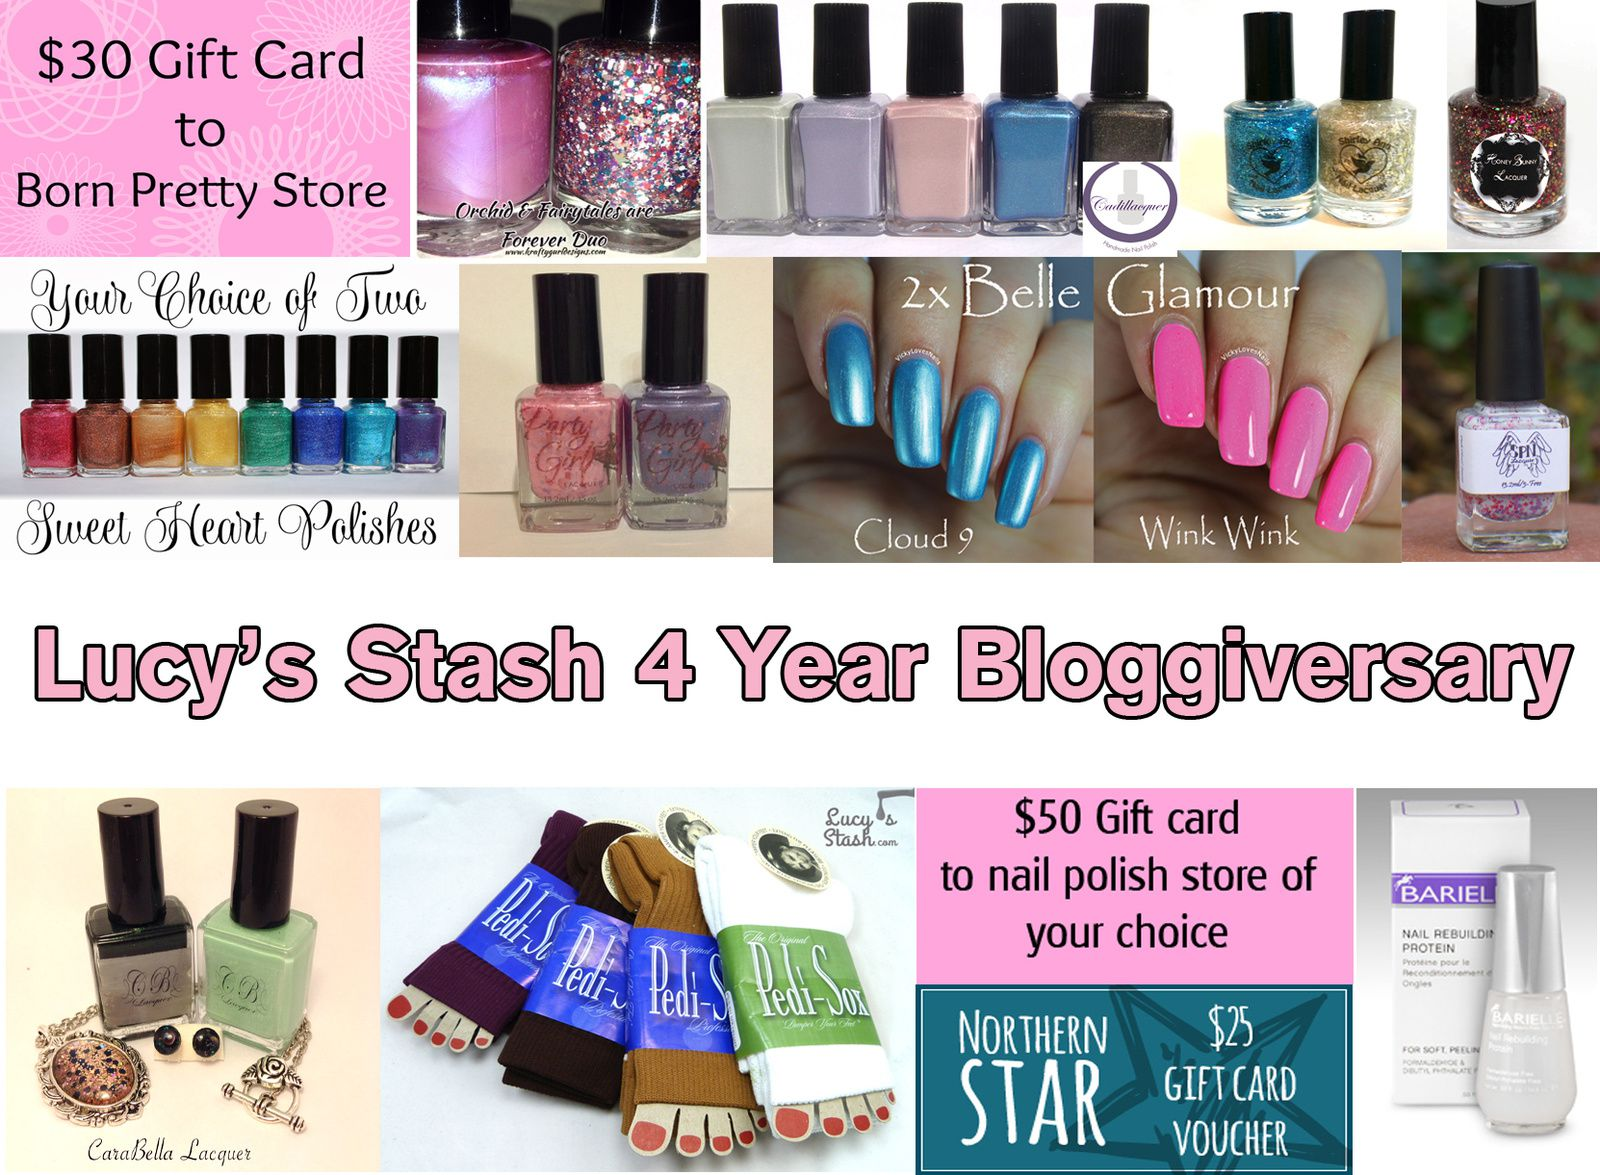 4 Year Bloggiversary GIVEAWAY with 18 Winners!